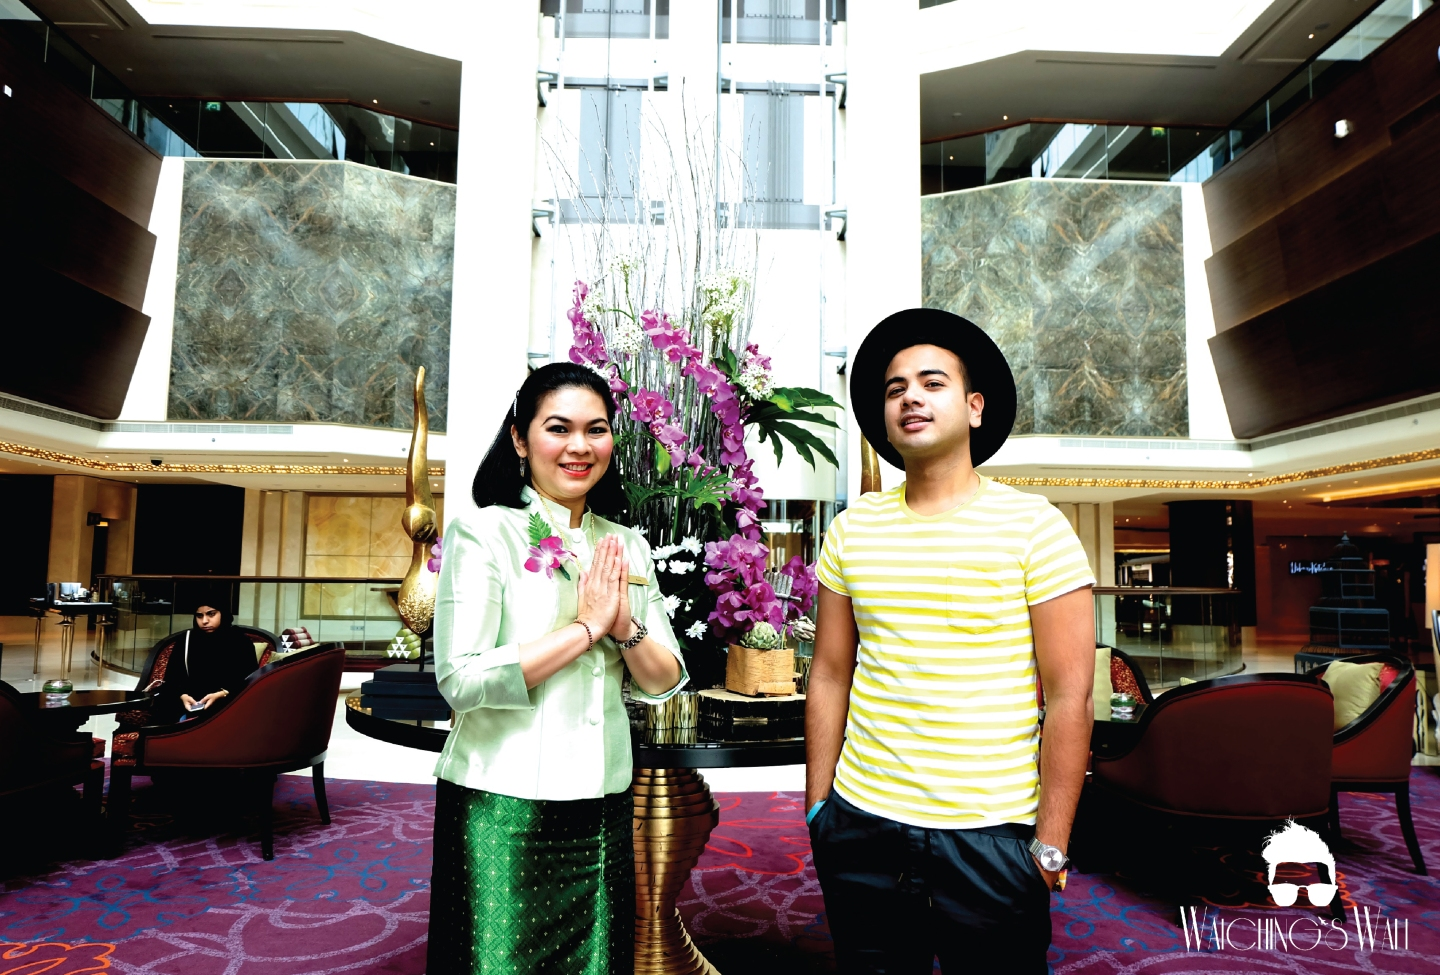 Dusit Thani_Hotel and Welcome_Ms Kitty_Waichings Wall